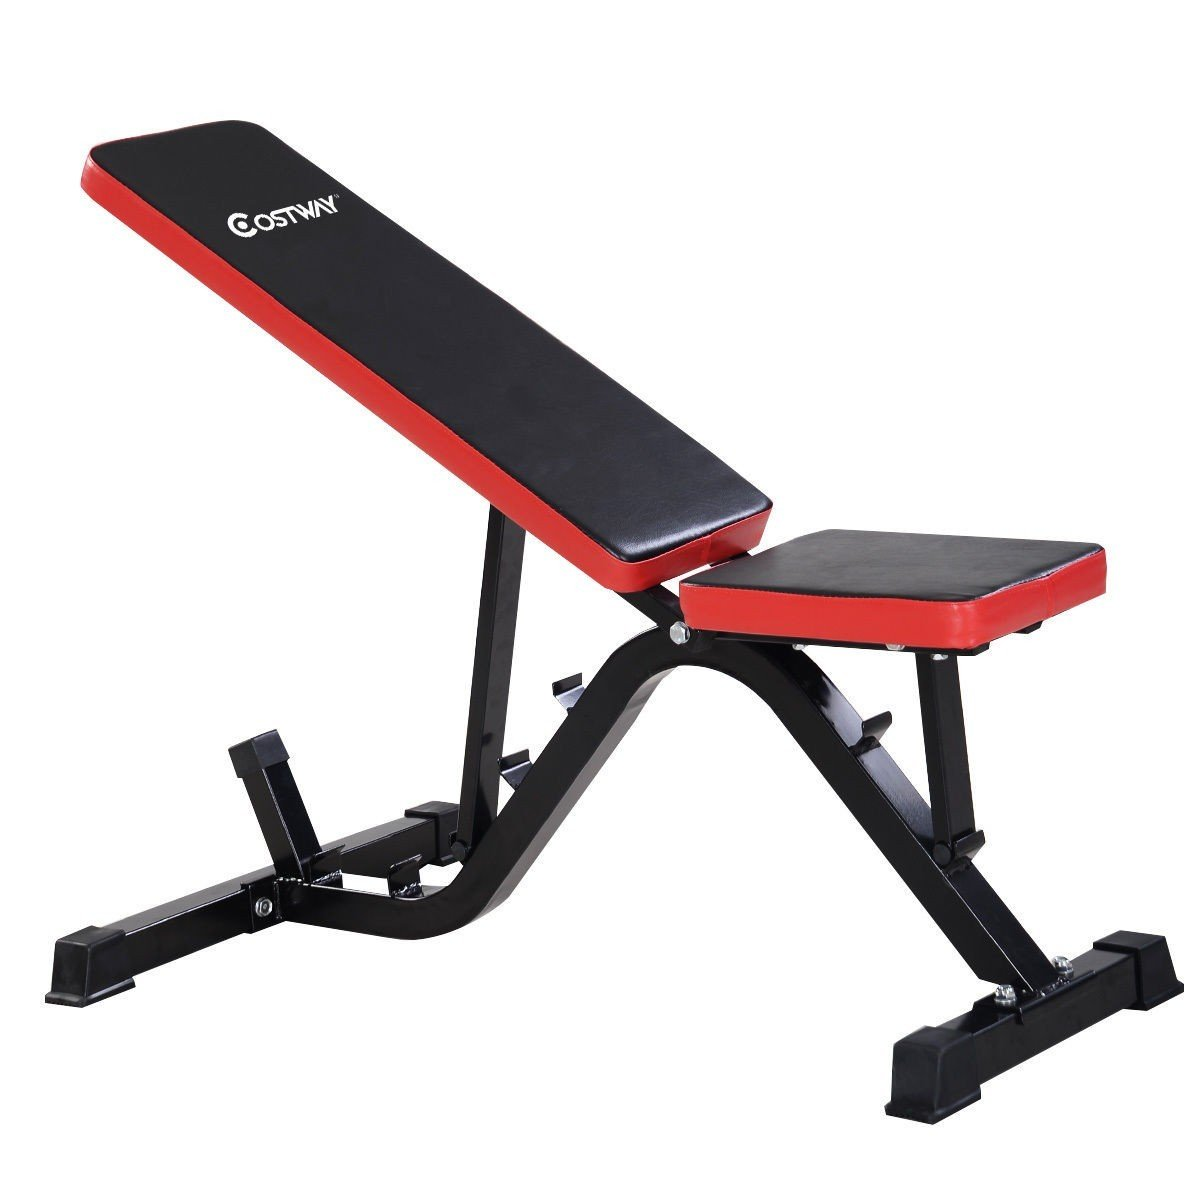 Apontus Red Costway Adjustable Sit up Incline Abs Bench